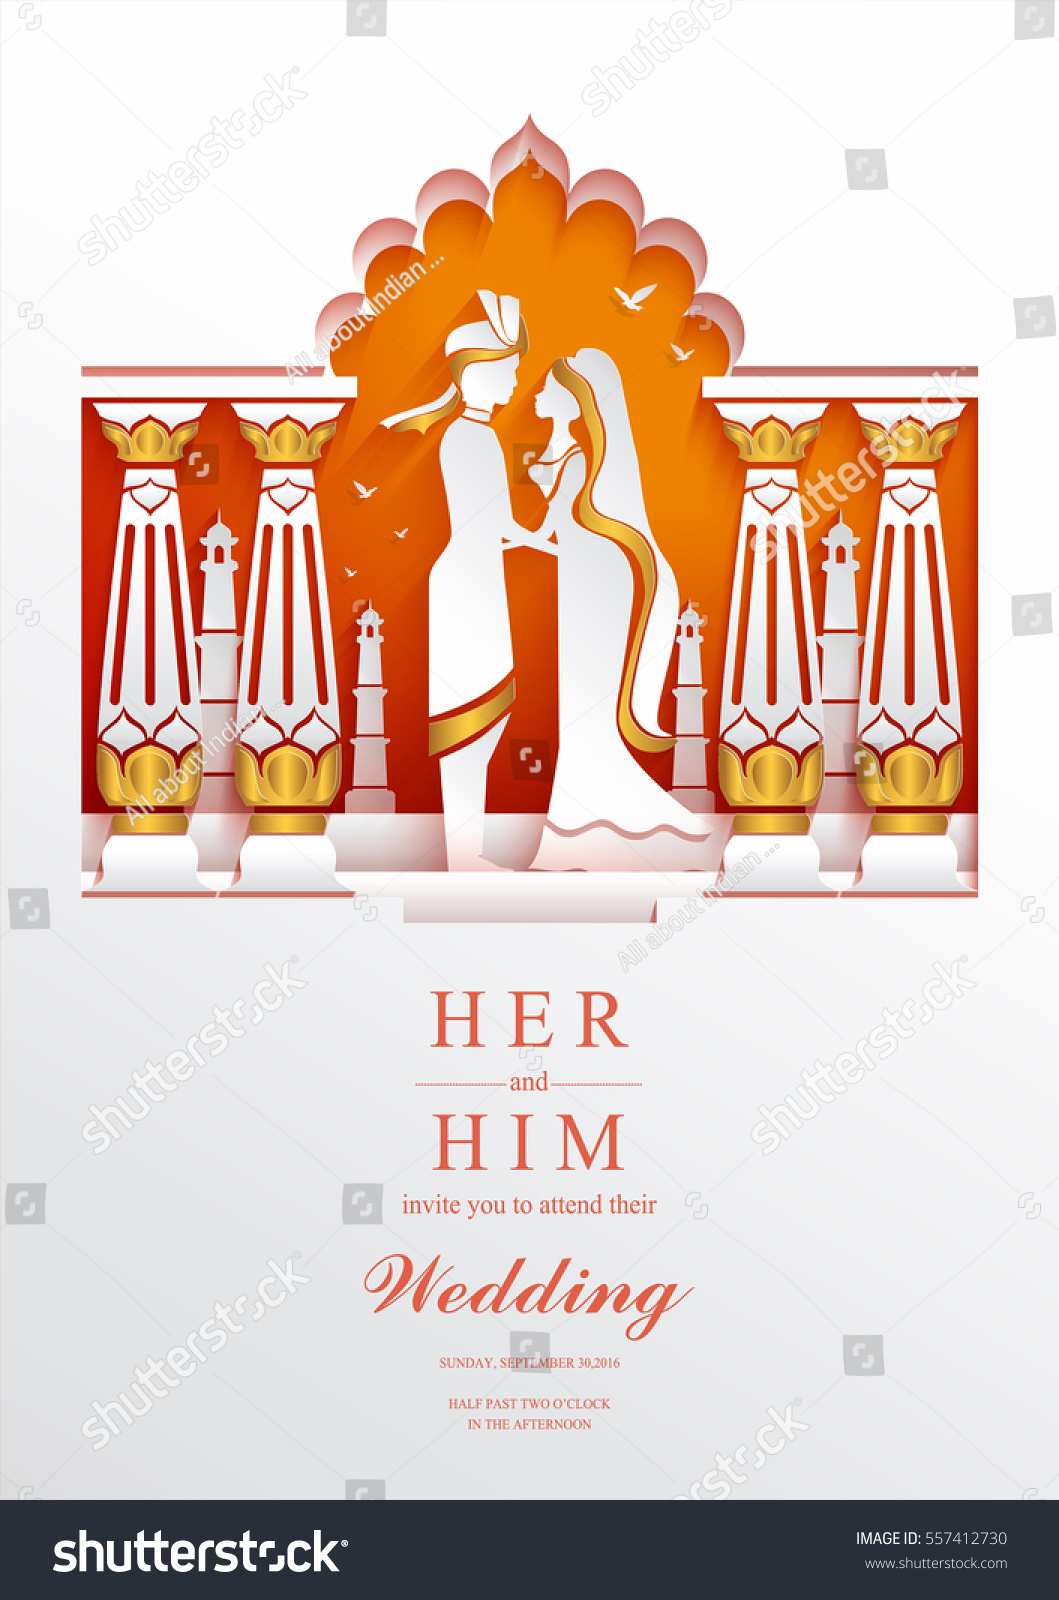 Indian Wedding Invitation Card Templates With Paper Art And Craft Style On Color